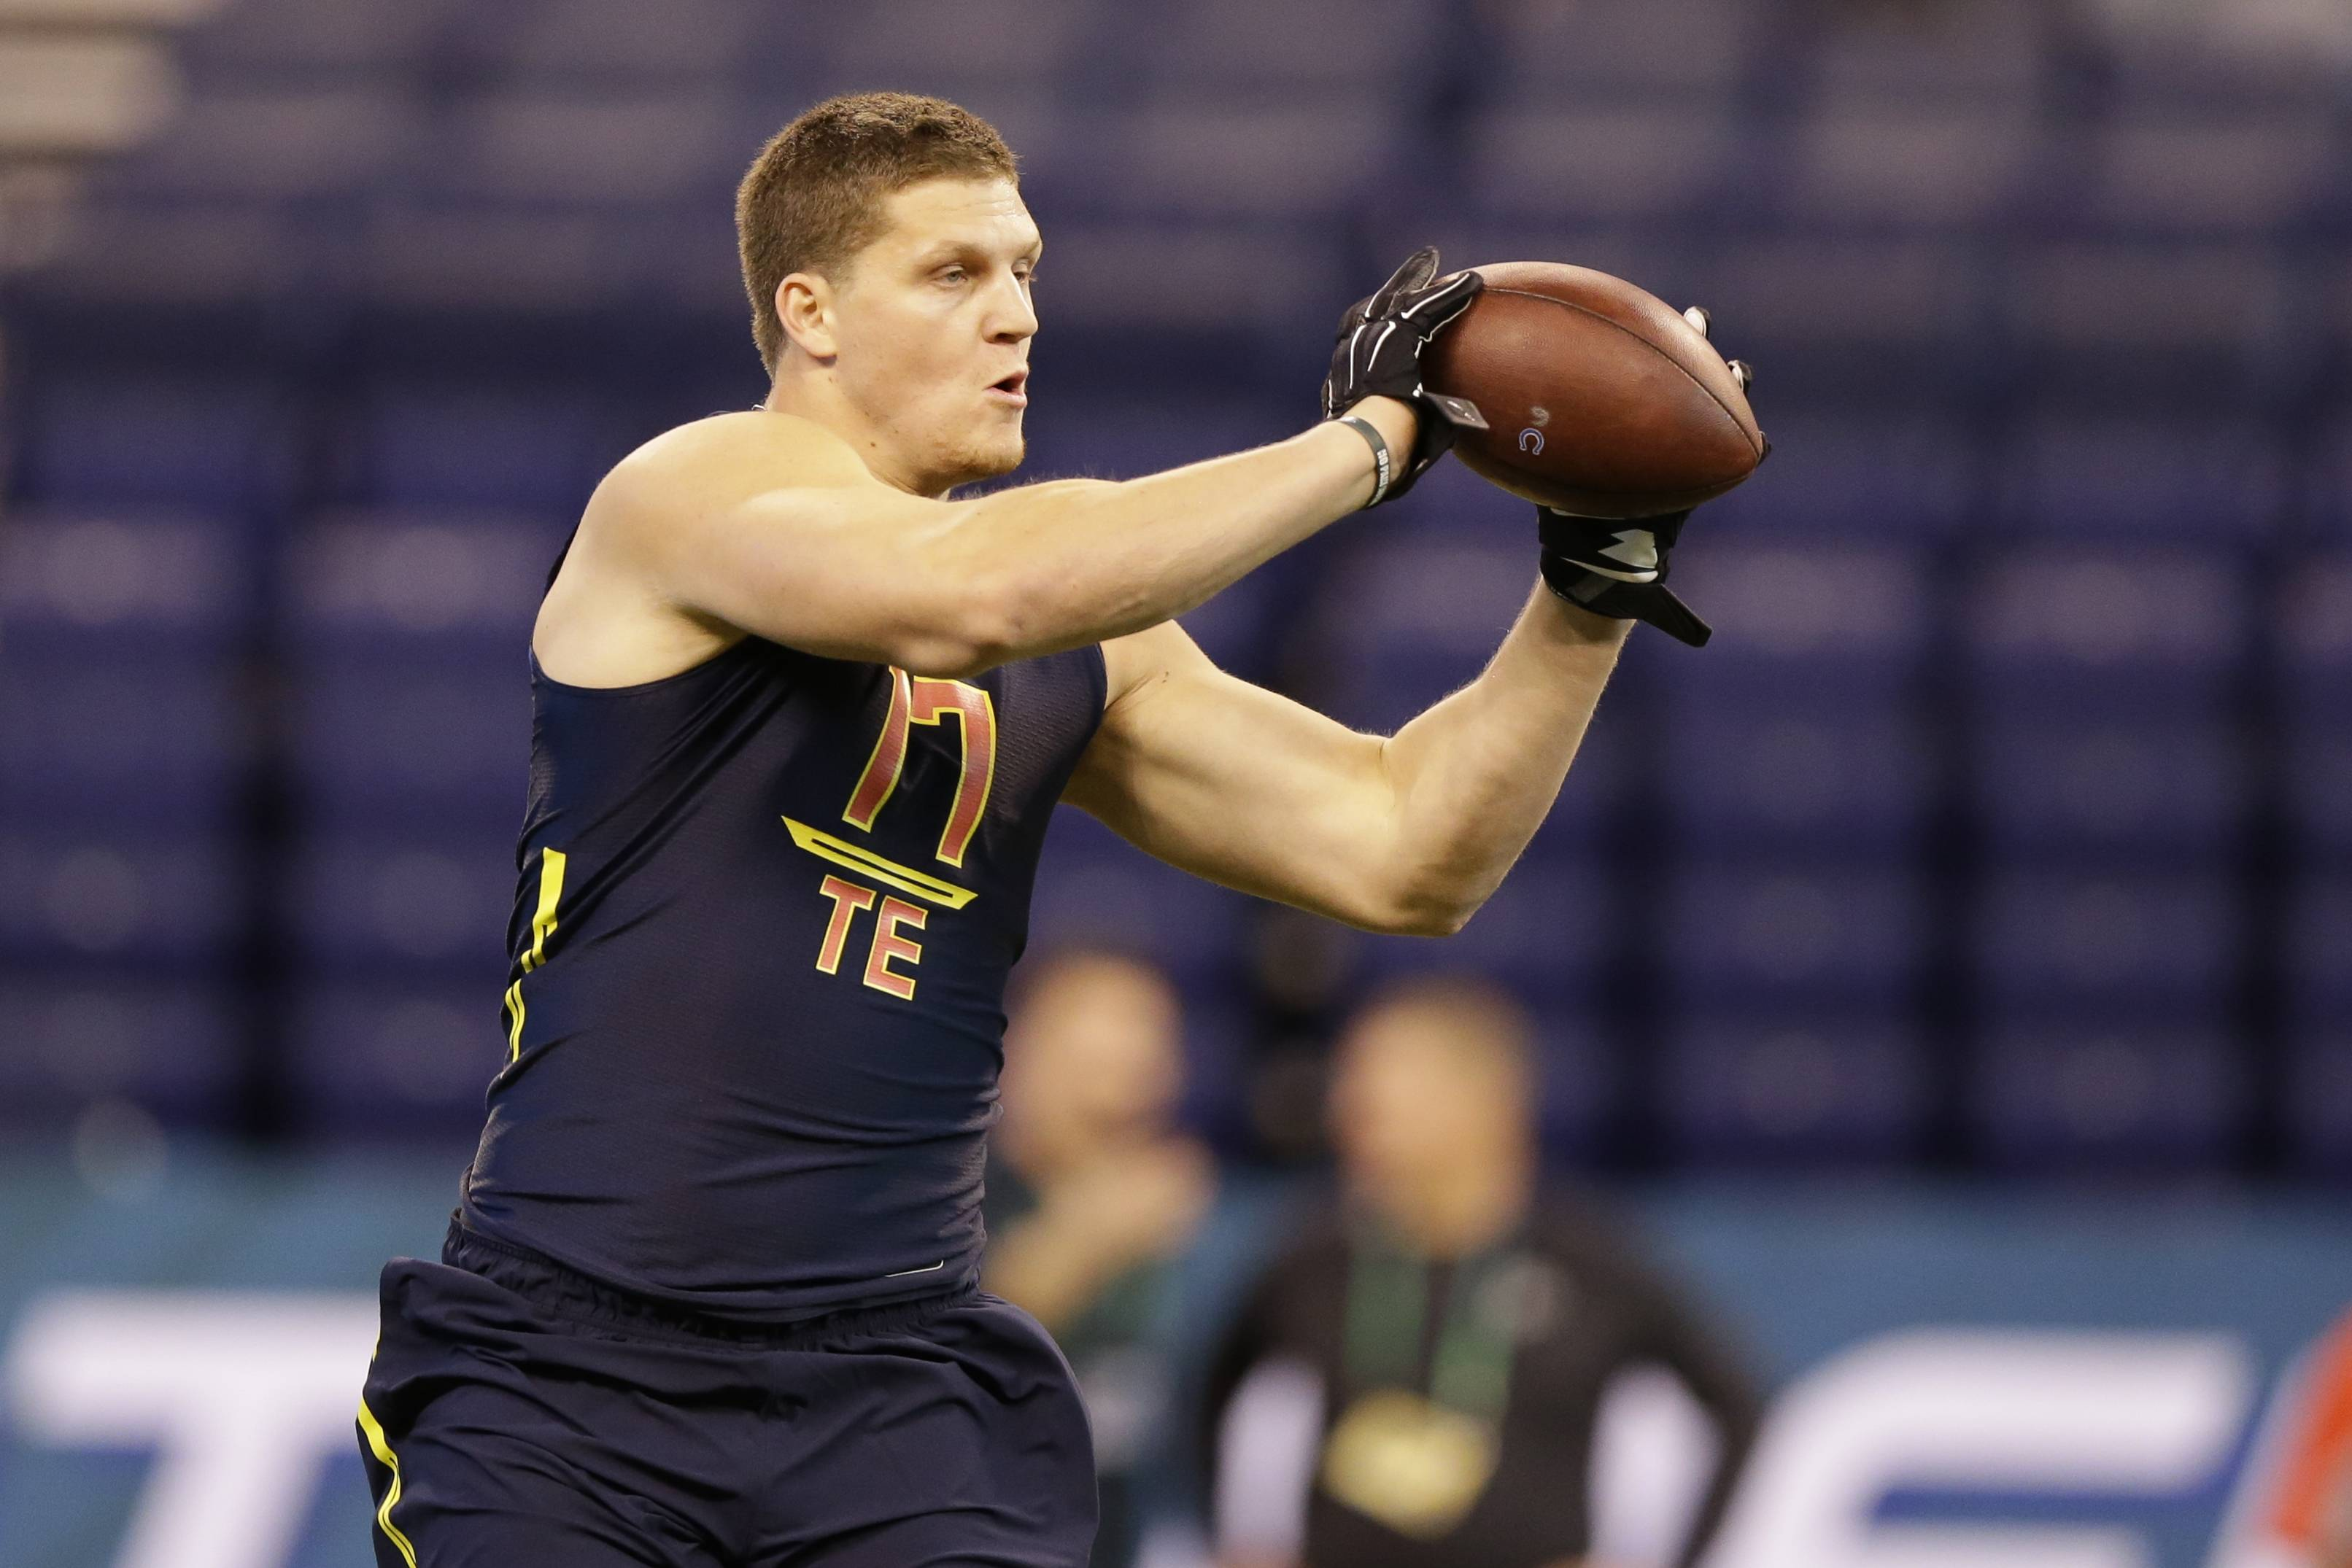 The Bears signed second-round draft pick (No. 45 overall) Adam Shaheen to a four-year deal Friday.The 6-foot-6, 278-pound tight end from Ashland University, led all Division-II tight ends in receptions (57) and yards (867) last season and led all college tight ends with 16 touchdown catches in 11 games, an Ashland single-season record.